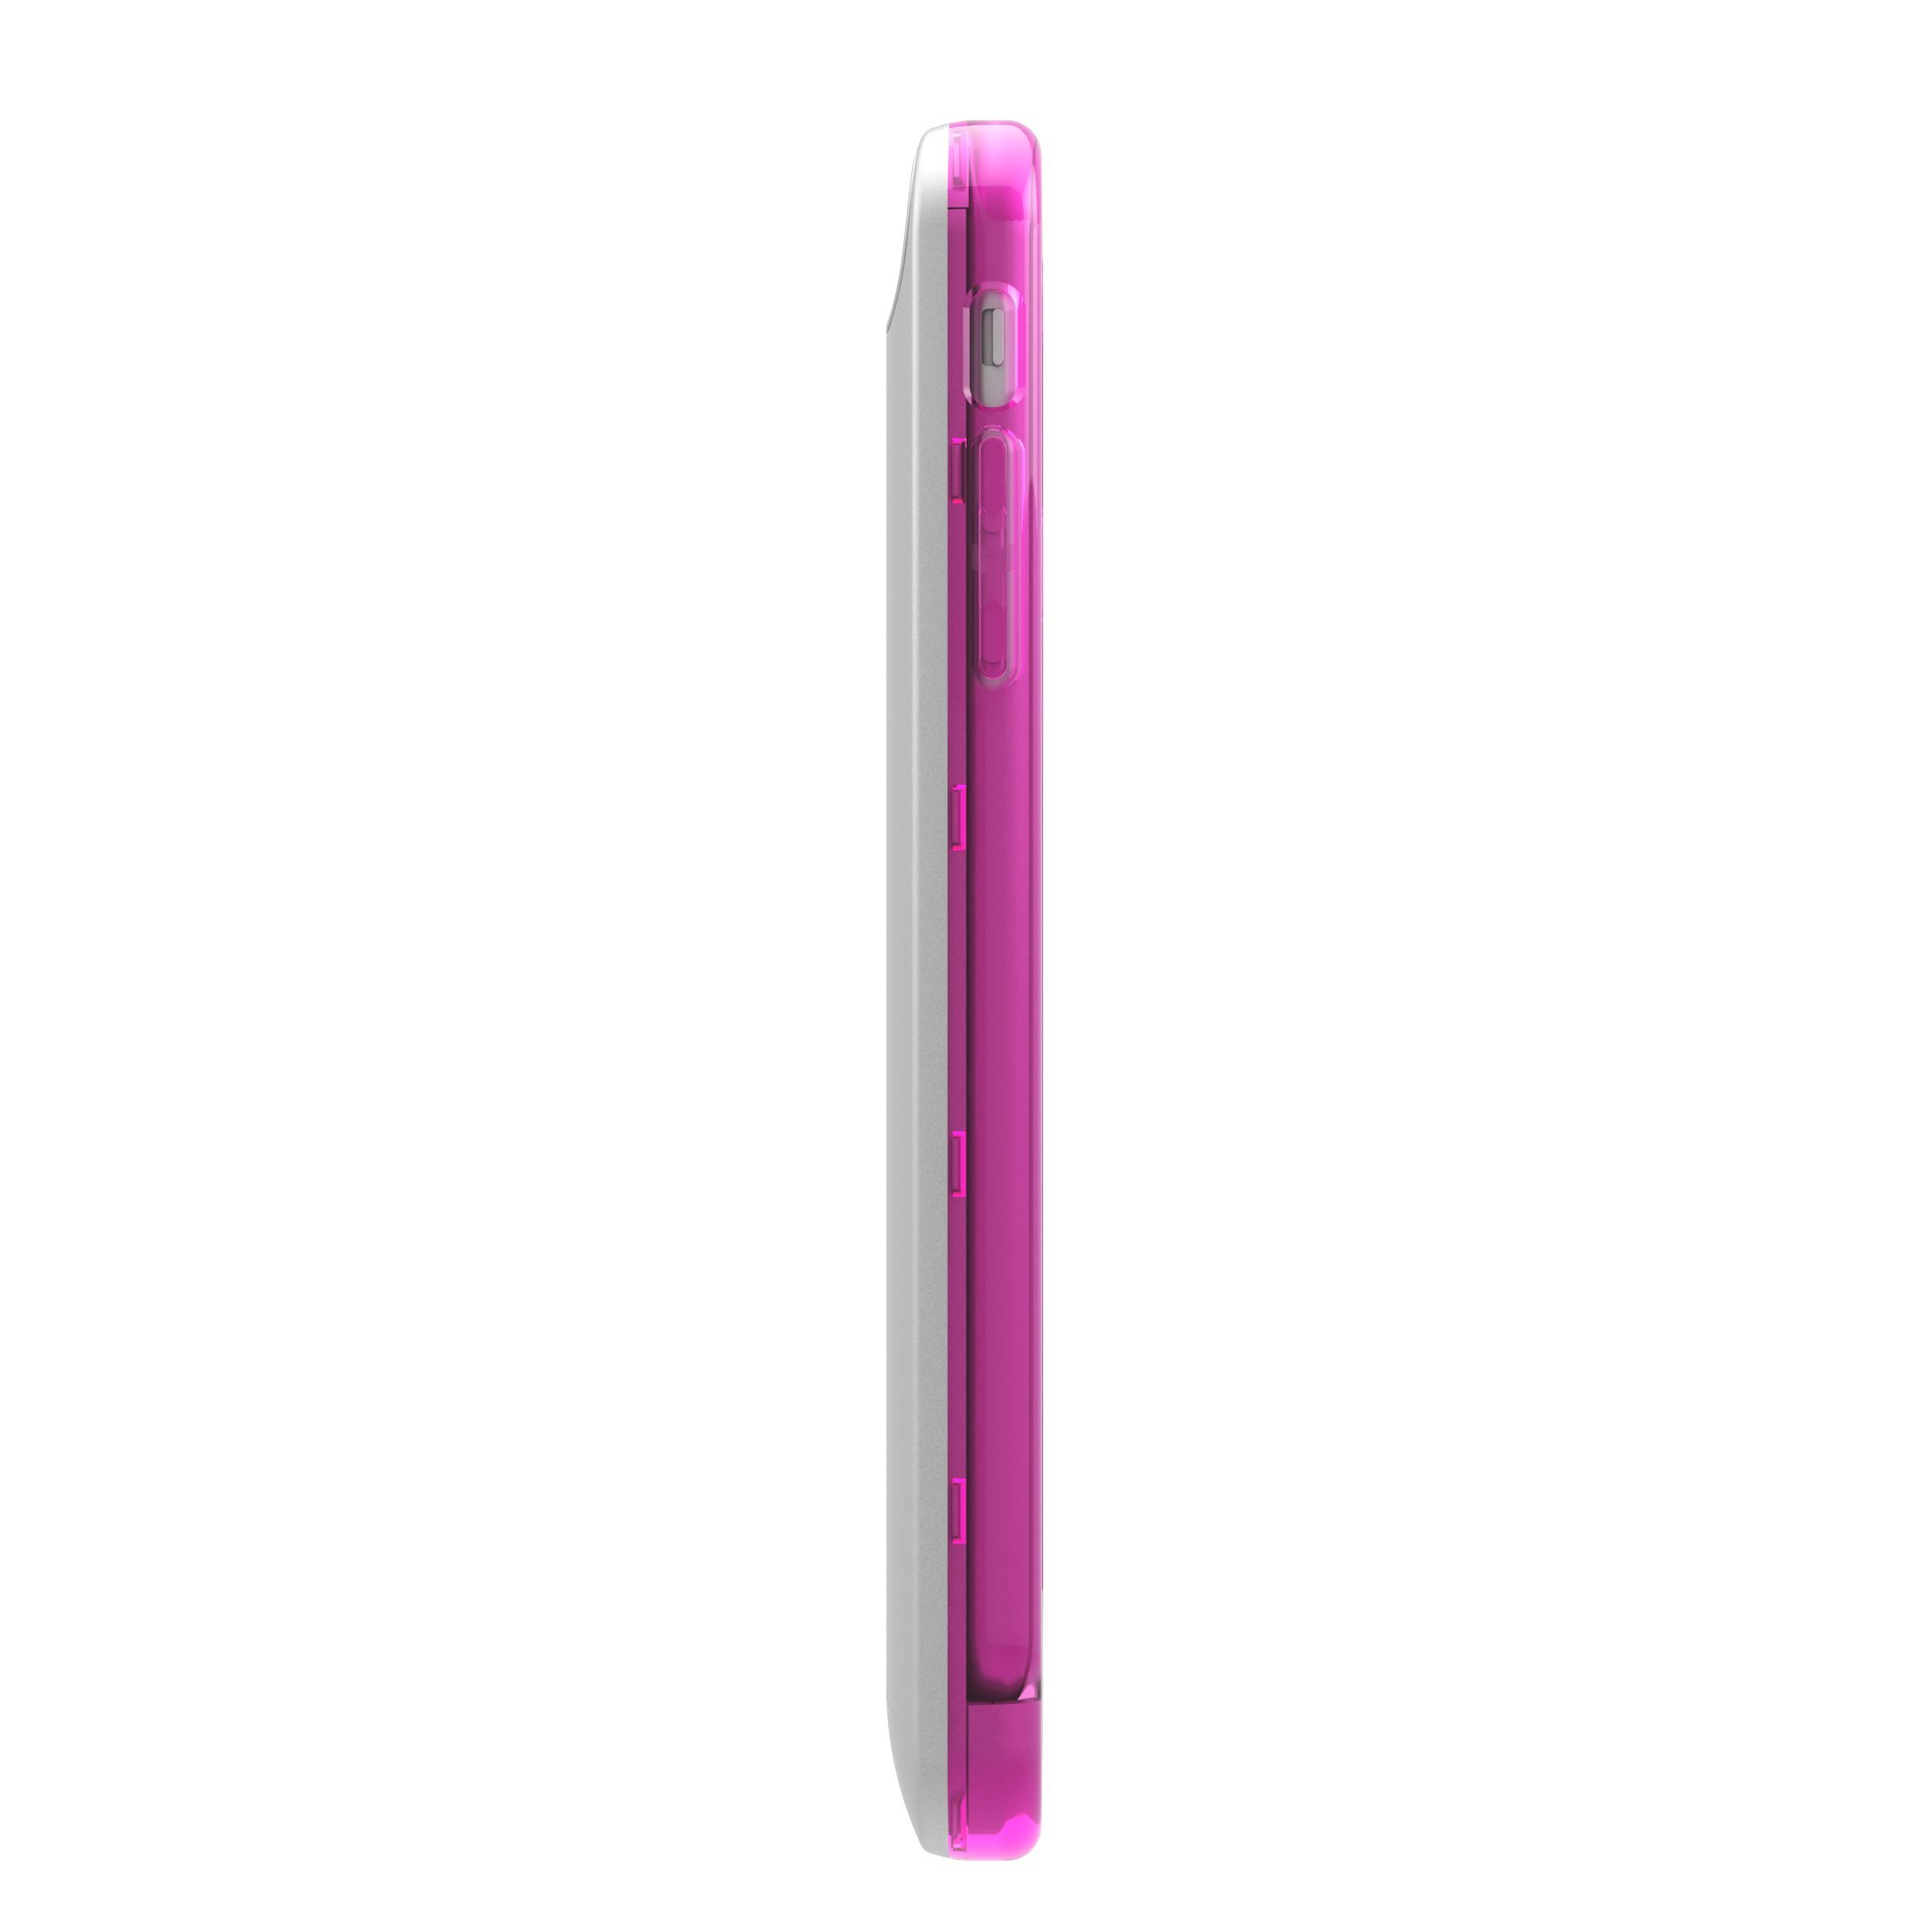 TAMO iPhone 6/6s Extended Battery Case, TAMO 2400 mAh dual-purposed Ultra-Slim Protective Extended Battery Case - Pink - Battery - Retail Packaging - Pink by TAMO (Image #3)